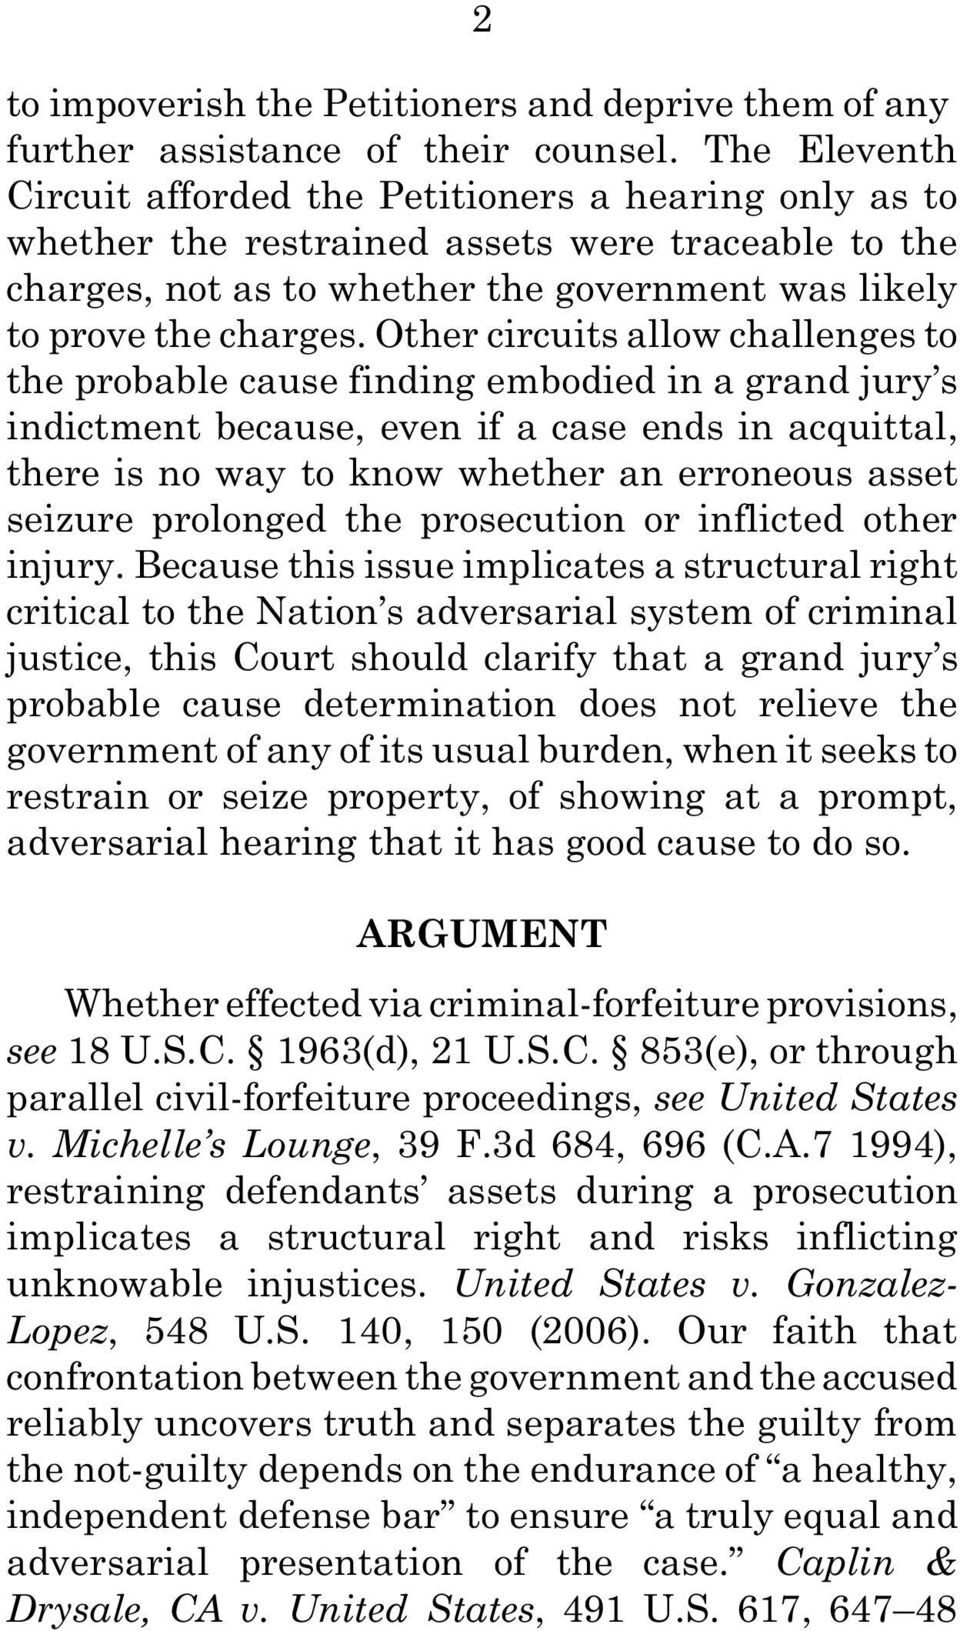 Other circuits allow challenges to the probable cause finding embodied in a grand jury s indictment because, even if a case ends in acquittal, there is no way to know whether an erroneous asset